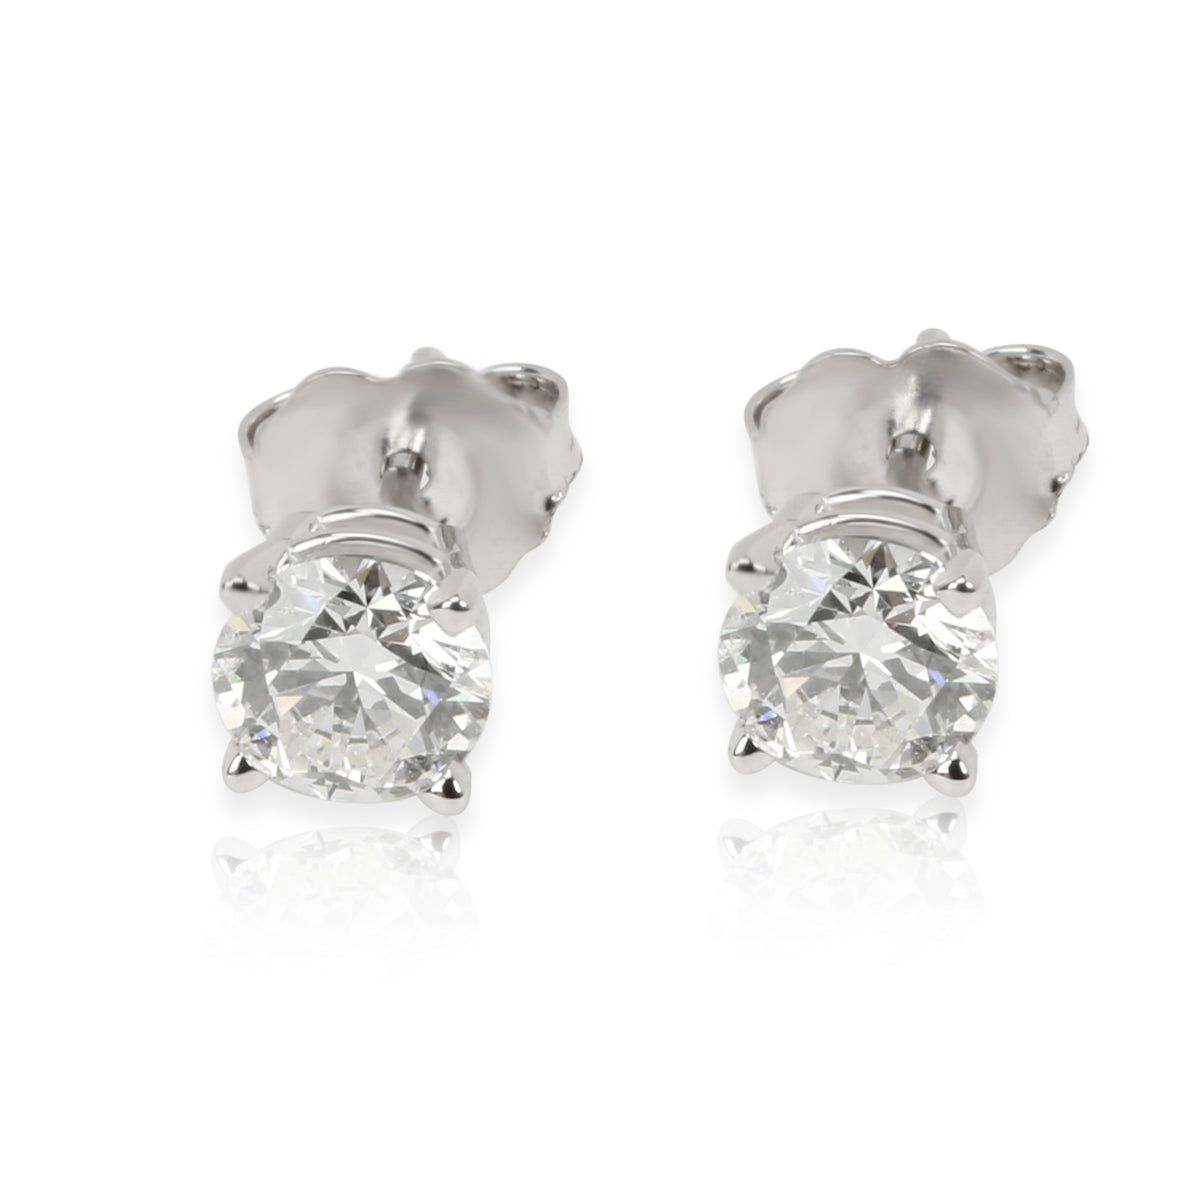 GIA Certified Diamond Stud Earrings in 14K White Gold (1.02 ctw H/VS1)